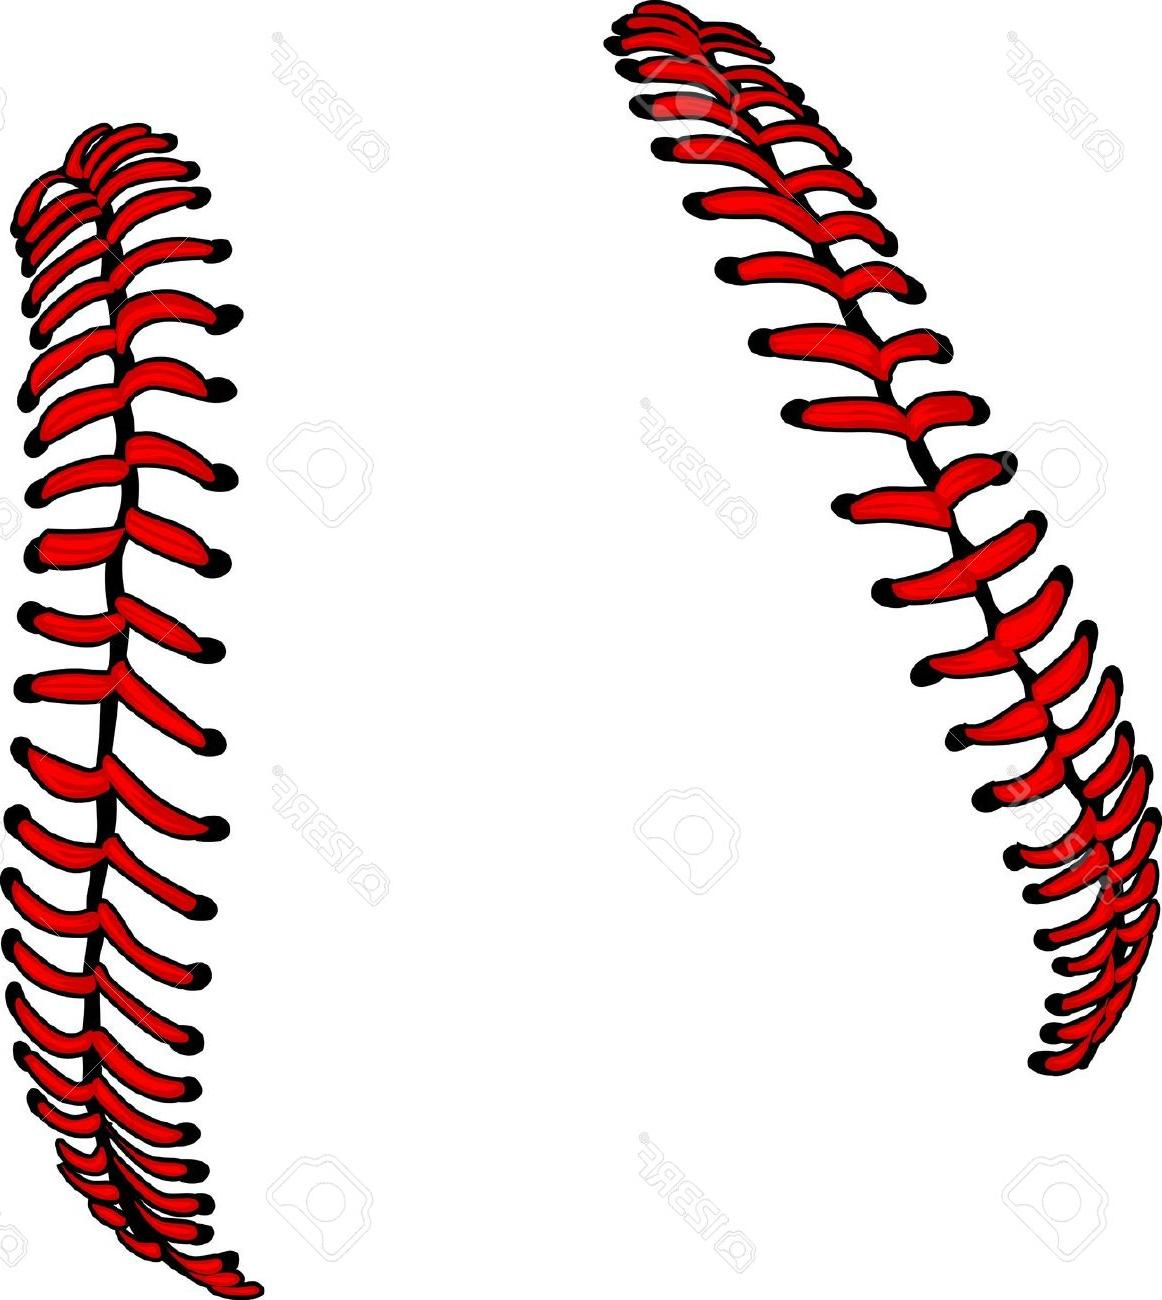 Baseball clipart lace. Best free pictures vector